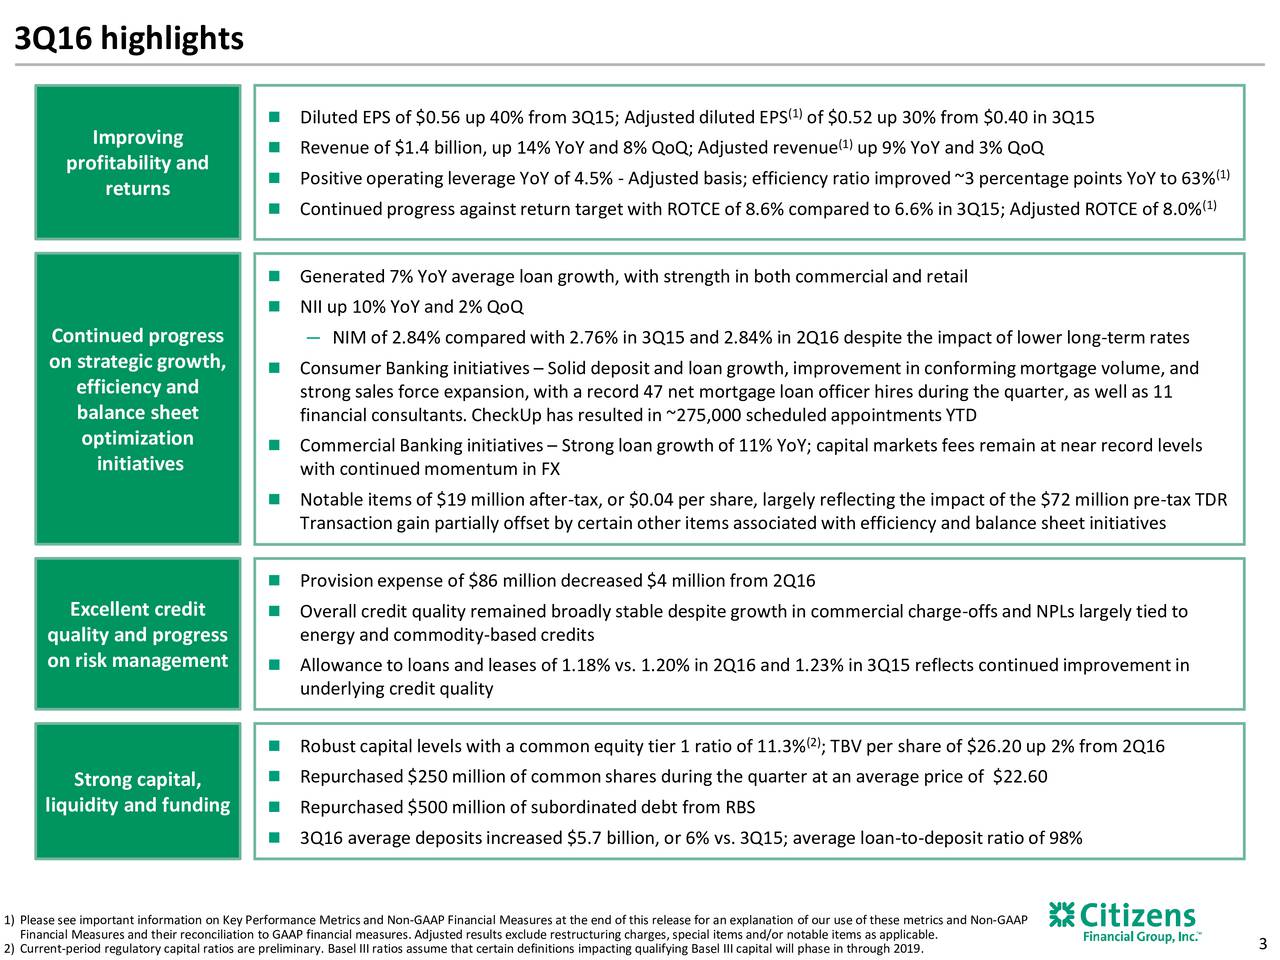 (1) Diluted EPS of $0.56 up 40% from 3Q15; Adjusted diluted EPS of $0.52 up 30% from $0.40 in 3Q15 Improving  Revenue of $1.4 billion, up 14% YoY and 8% QoQ; Adjusted revenue up 9% YoY and 3% QoQ profitabilityand Positiveoperating leverage YoY of 4.5% - Adjusted basis; efficiency ratio improved~3 percentage pointsYoY to 63% returns Continuedprogress againstreturn targetwith ROTCE of 8.6% comparedto 6.6% in 3Q15; Adjusted ROTCE of 8.0% Generated 7% YoY average loan growth, with strength in both commercialand retail NII up 10% YoY and 2% QoQ Continued progress  NIM of 2.84% comparedwith 2.76% in 3Q15 and 2.84% in 2Q16 despite the impactof lower long-termrates on strategic growth, ConsumerBanking initiatives Solid depositand loan growth,improvementin conformingmortgage volume, and efficiency and strongsales force expansion,with a record 47 net mortgageloan officer hires during the quarter, as well as 11 balance sheet financial consultants.CheckUp has resulted in ~275,000 scheduled appointmentsYTD optimization  CommercialBanking initiatives Strong loan growthof 11% YoY; capitalmarketsfees remain at near record levels initiatives with continuedmomentumin FX Notable itemsof $19 millionafter-tax, or $0.04 per share, largely reflecting the impactof the $72 millionpre-tax TDR Transactiongain partially offset by certain other itemsassociatedwith efficiency and balance sheet initiatives Provisionexpense of $86 milliondecreased $4 millionfrom 2Q16 Excellent credit  Overall credit quality remained broadly stable despite growthin commercialcharge-offs and NPLs largely tied to quality and progress energy and commodity-basedcredits on risk management  Allowanceto loans and leases of 1.18% vs. 1.20% in 2Q16 and 1.23% in 3Q15 reflects continuedimprovementin underlying credit quality (2) Robustcapital levels with a commonequity tier 1 ratio of 11.3% ; TBV per share of $26.20 up 2% from 2Q16 Strong capital,  Repurchased $250 millionof commonshares during the quarter at an average price